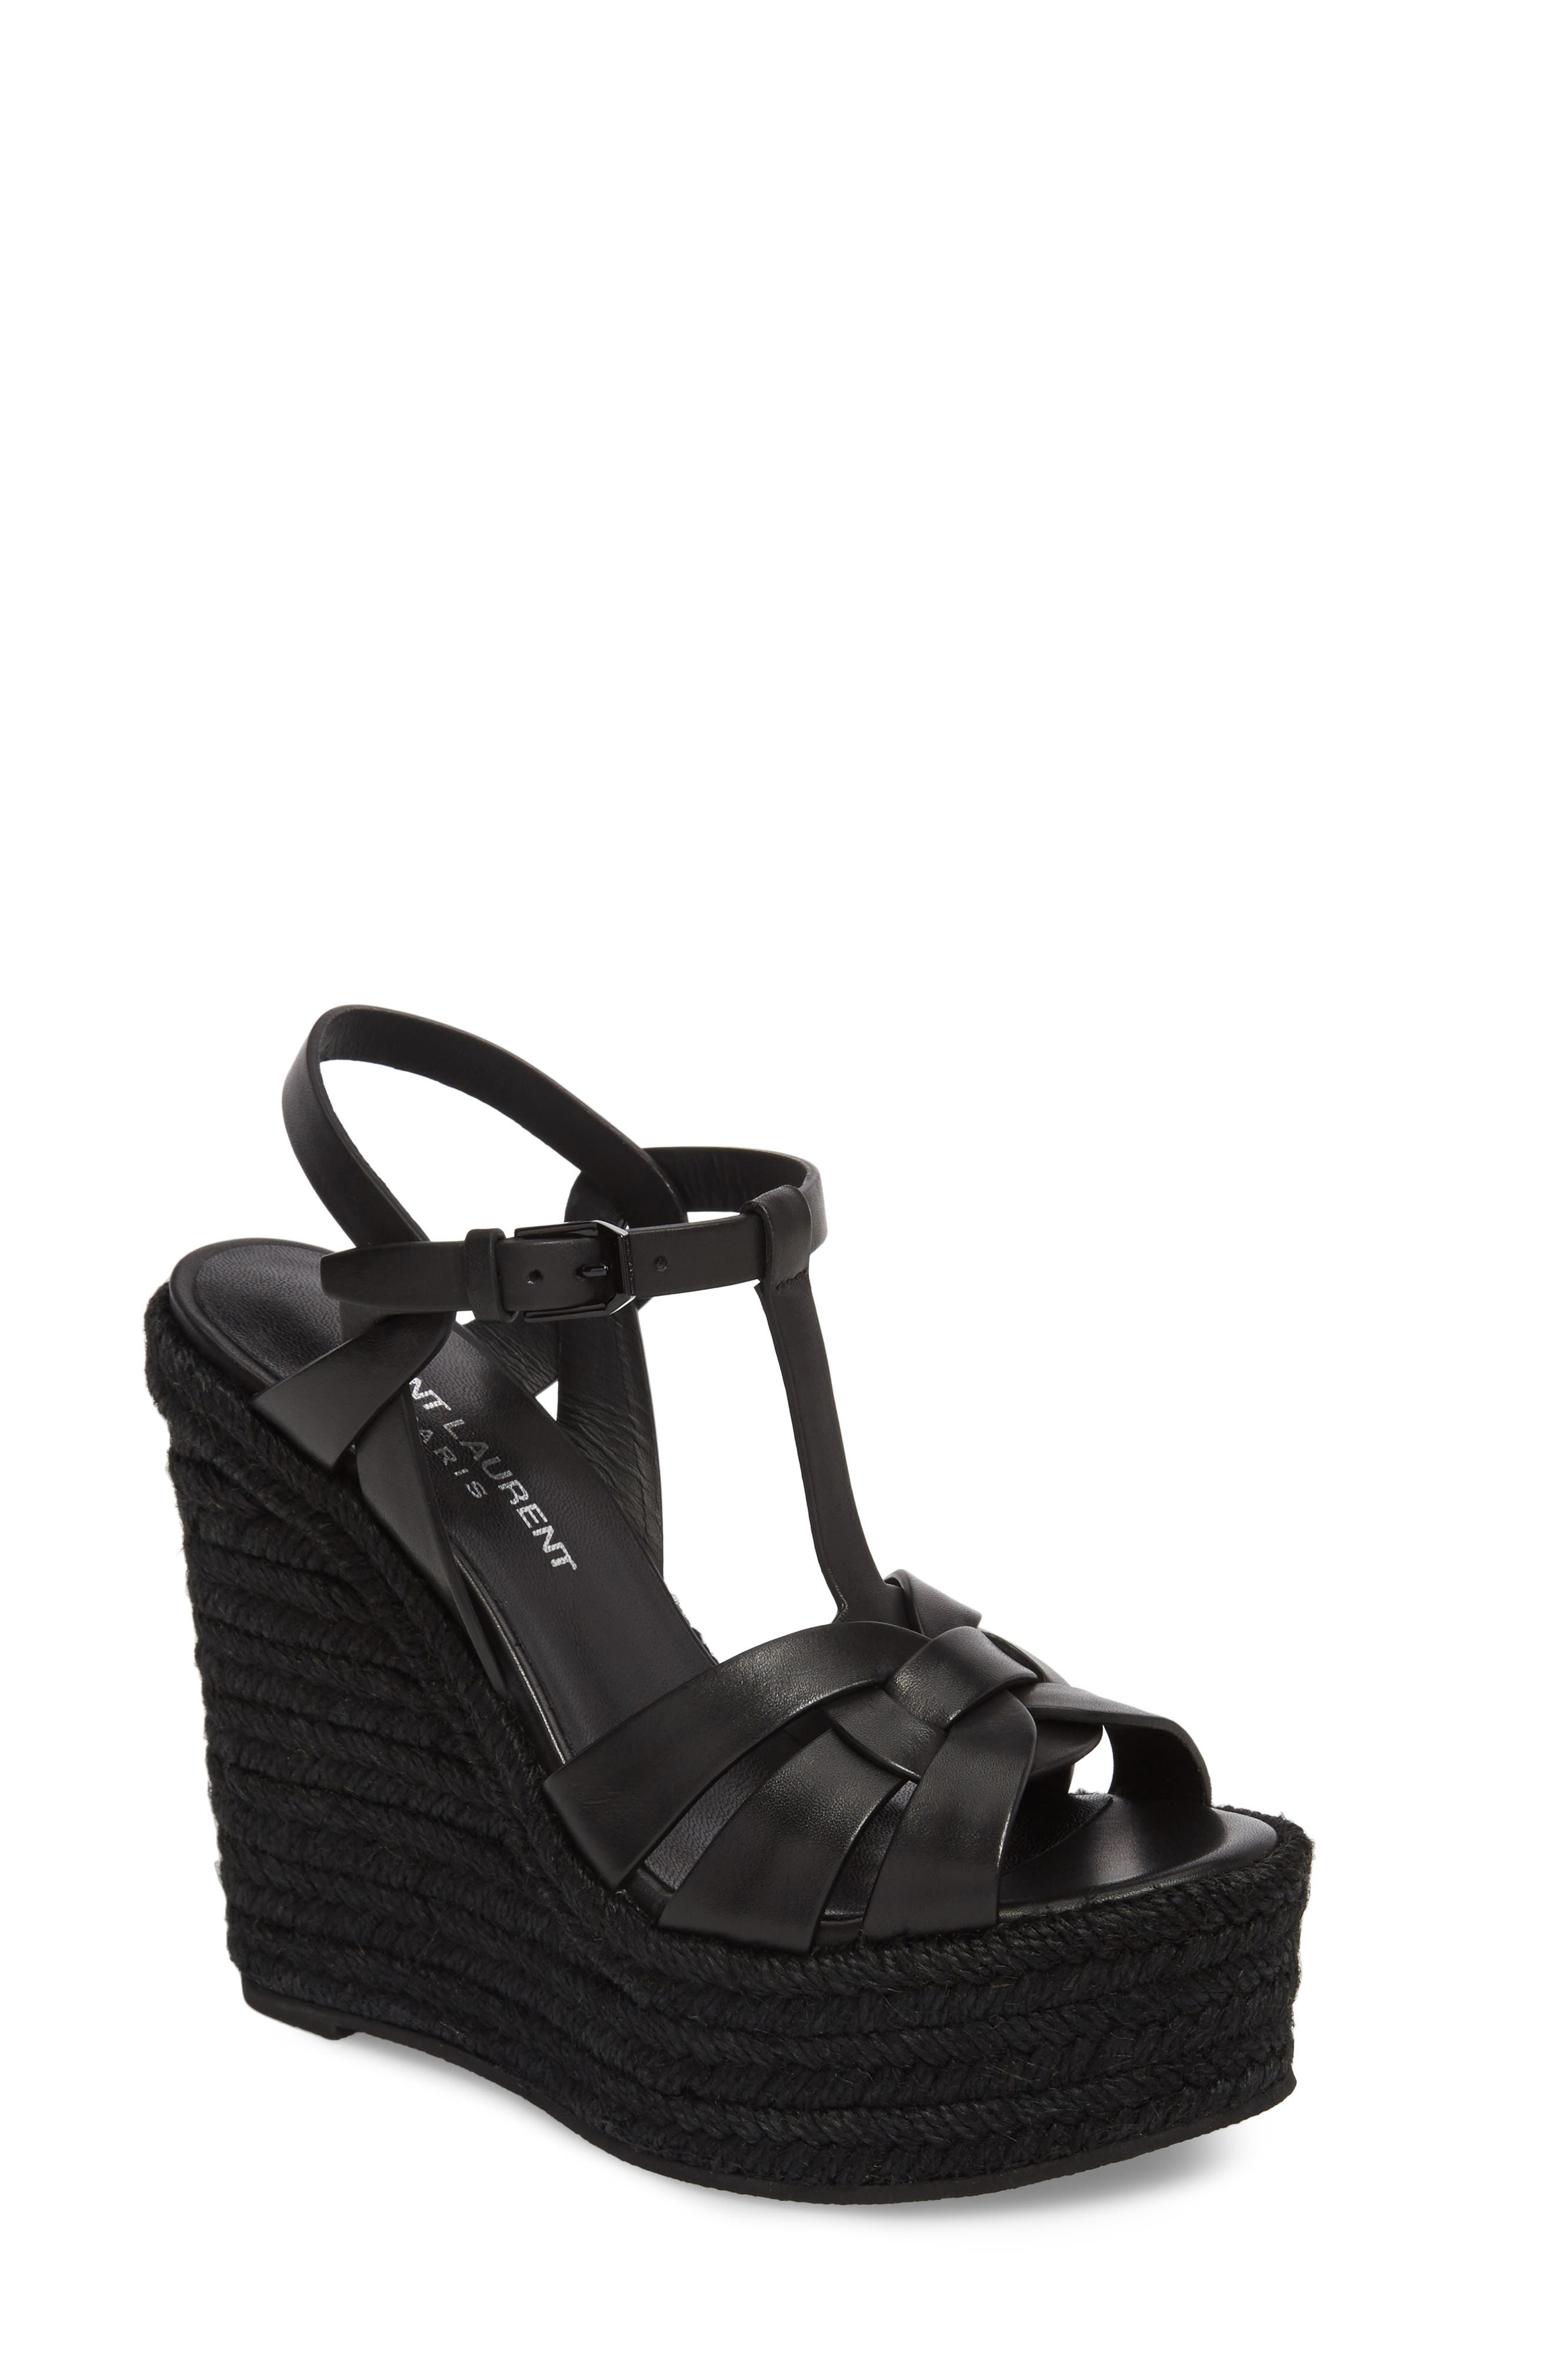 SAINT LAURENT Tribute Espadrille Wedge, Main, color, BLACK